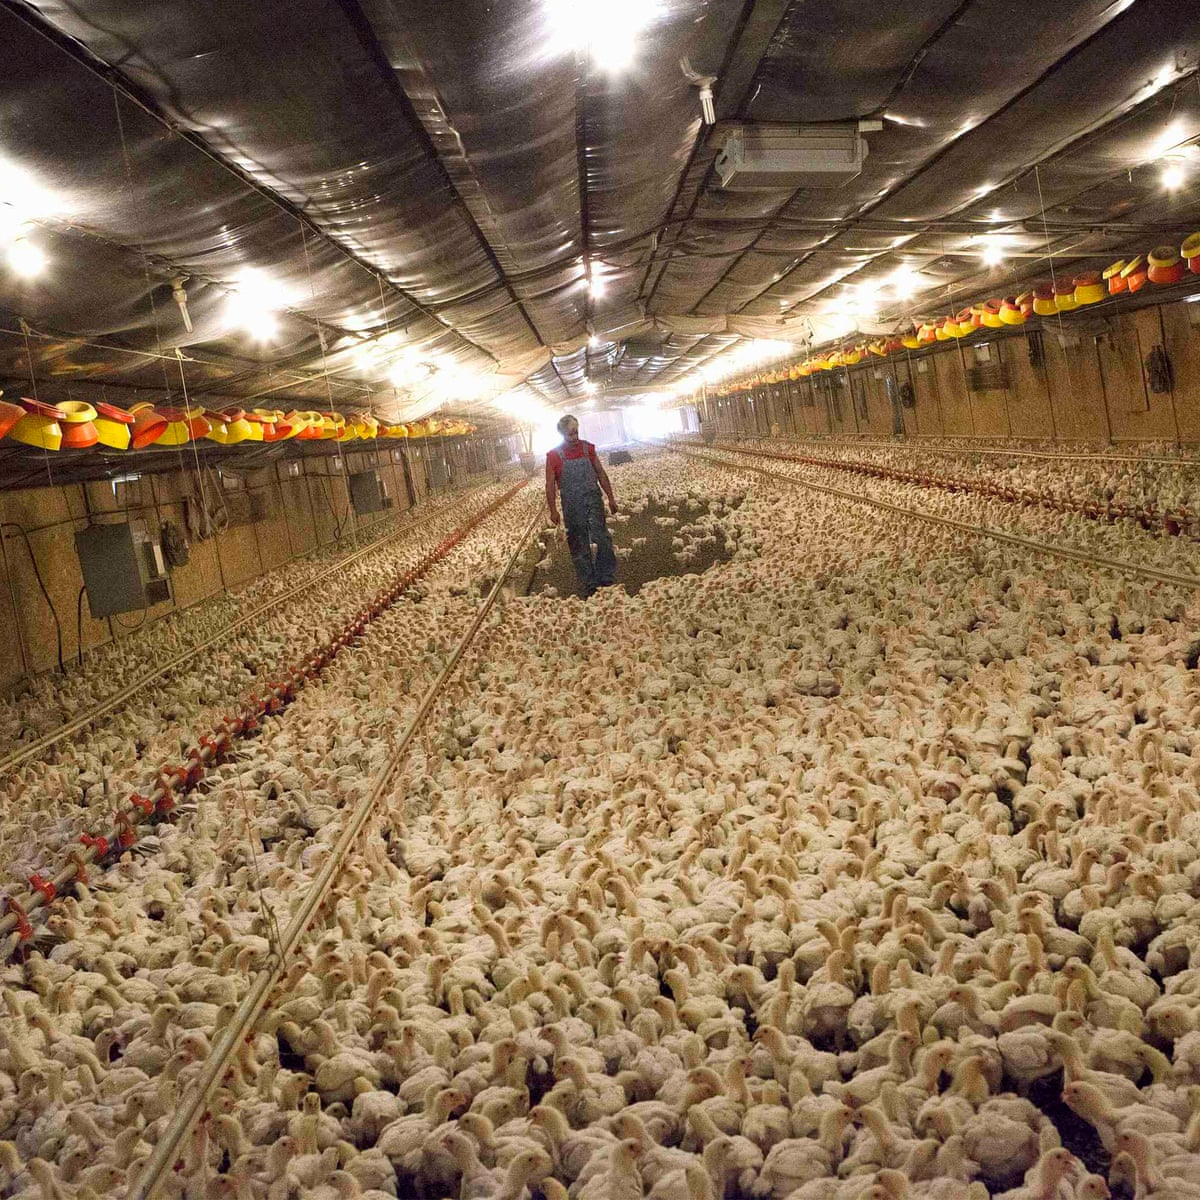 Will The Worst Bird Flu Outbreak In Us History Finally Make Us Reconsider Factory Farming Chicken Vital Signs The Guardian